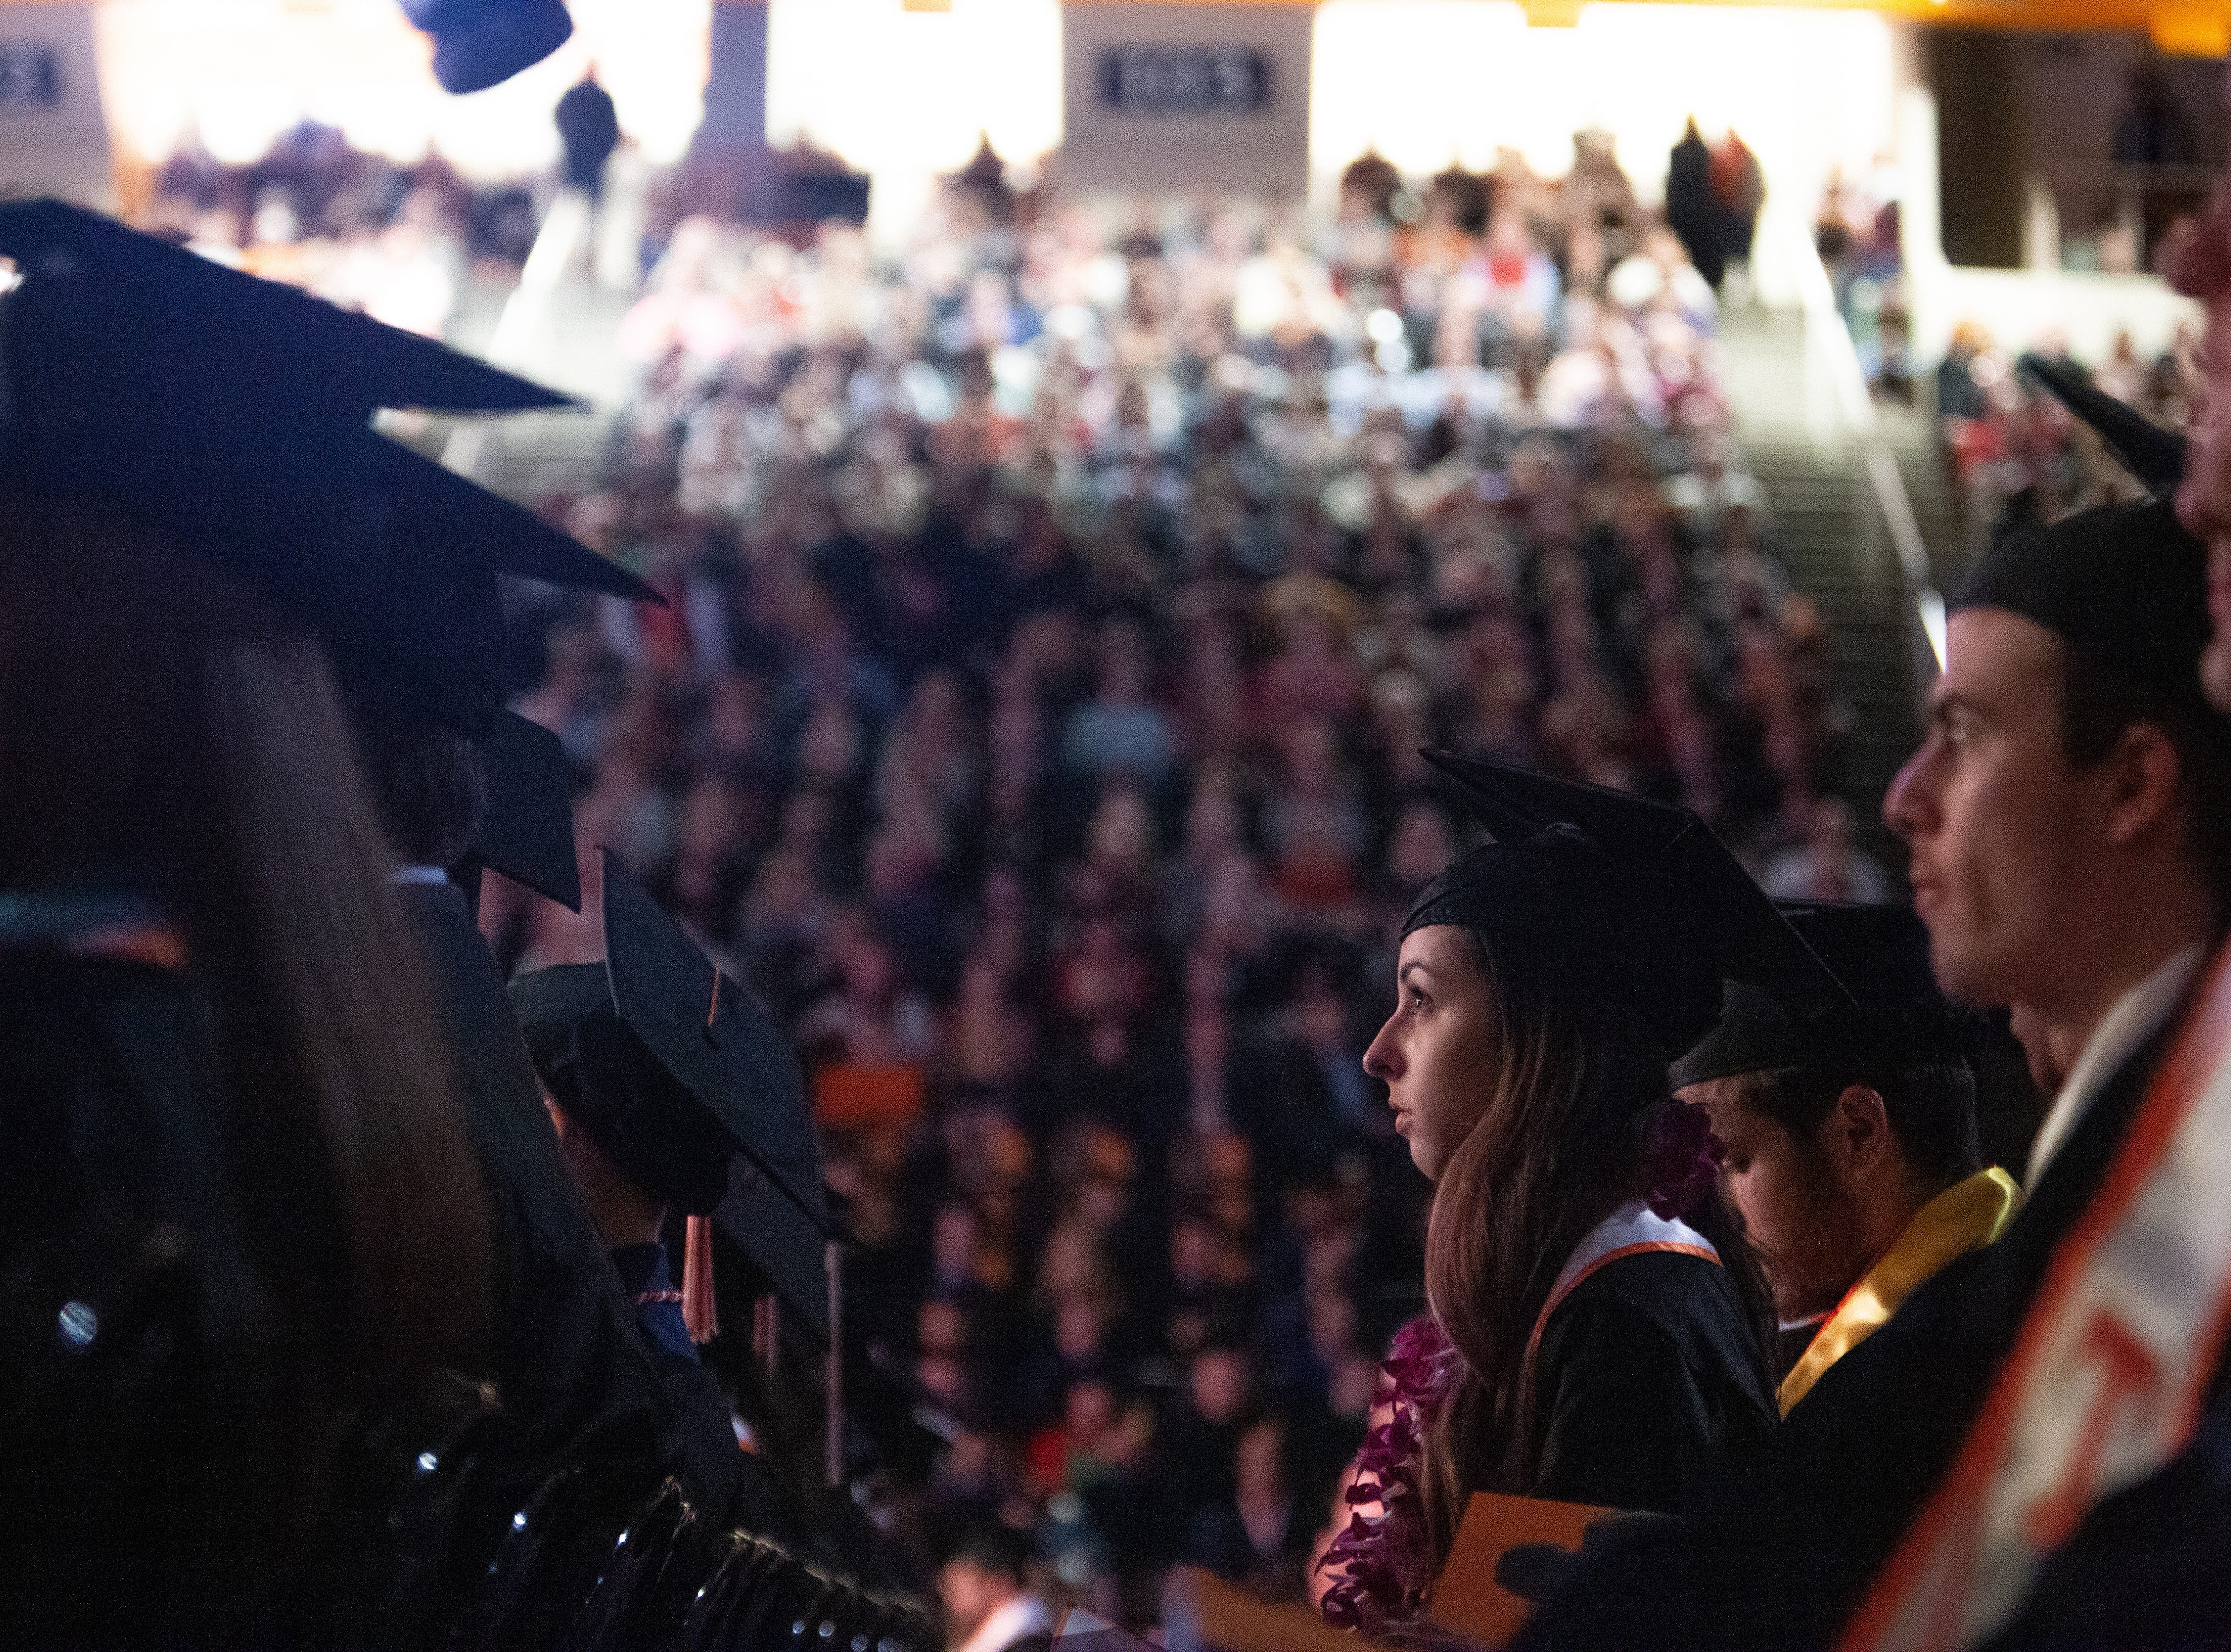 A graduate listens to the Chancellor Wayne T. Davis speak during the University of Tennessee winter Commencement ceremony at Thompson-Boling Assembly Center and Arena in Knoxville Friday, Dec. 14, 2018.